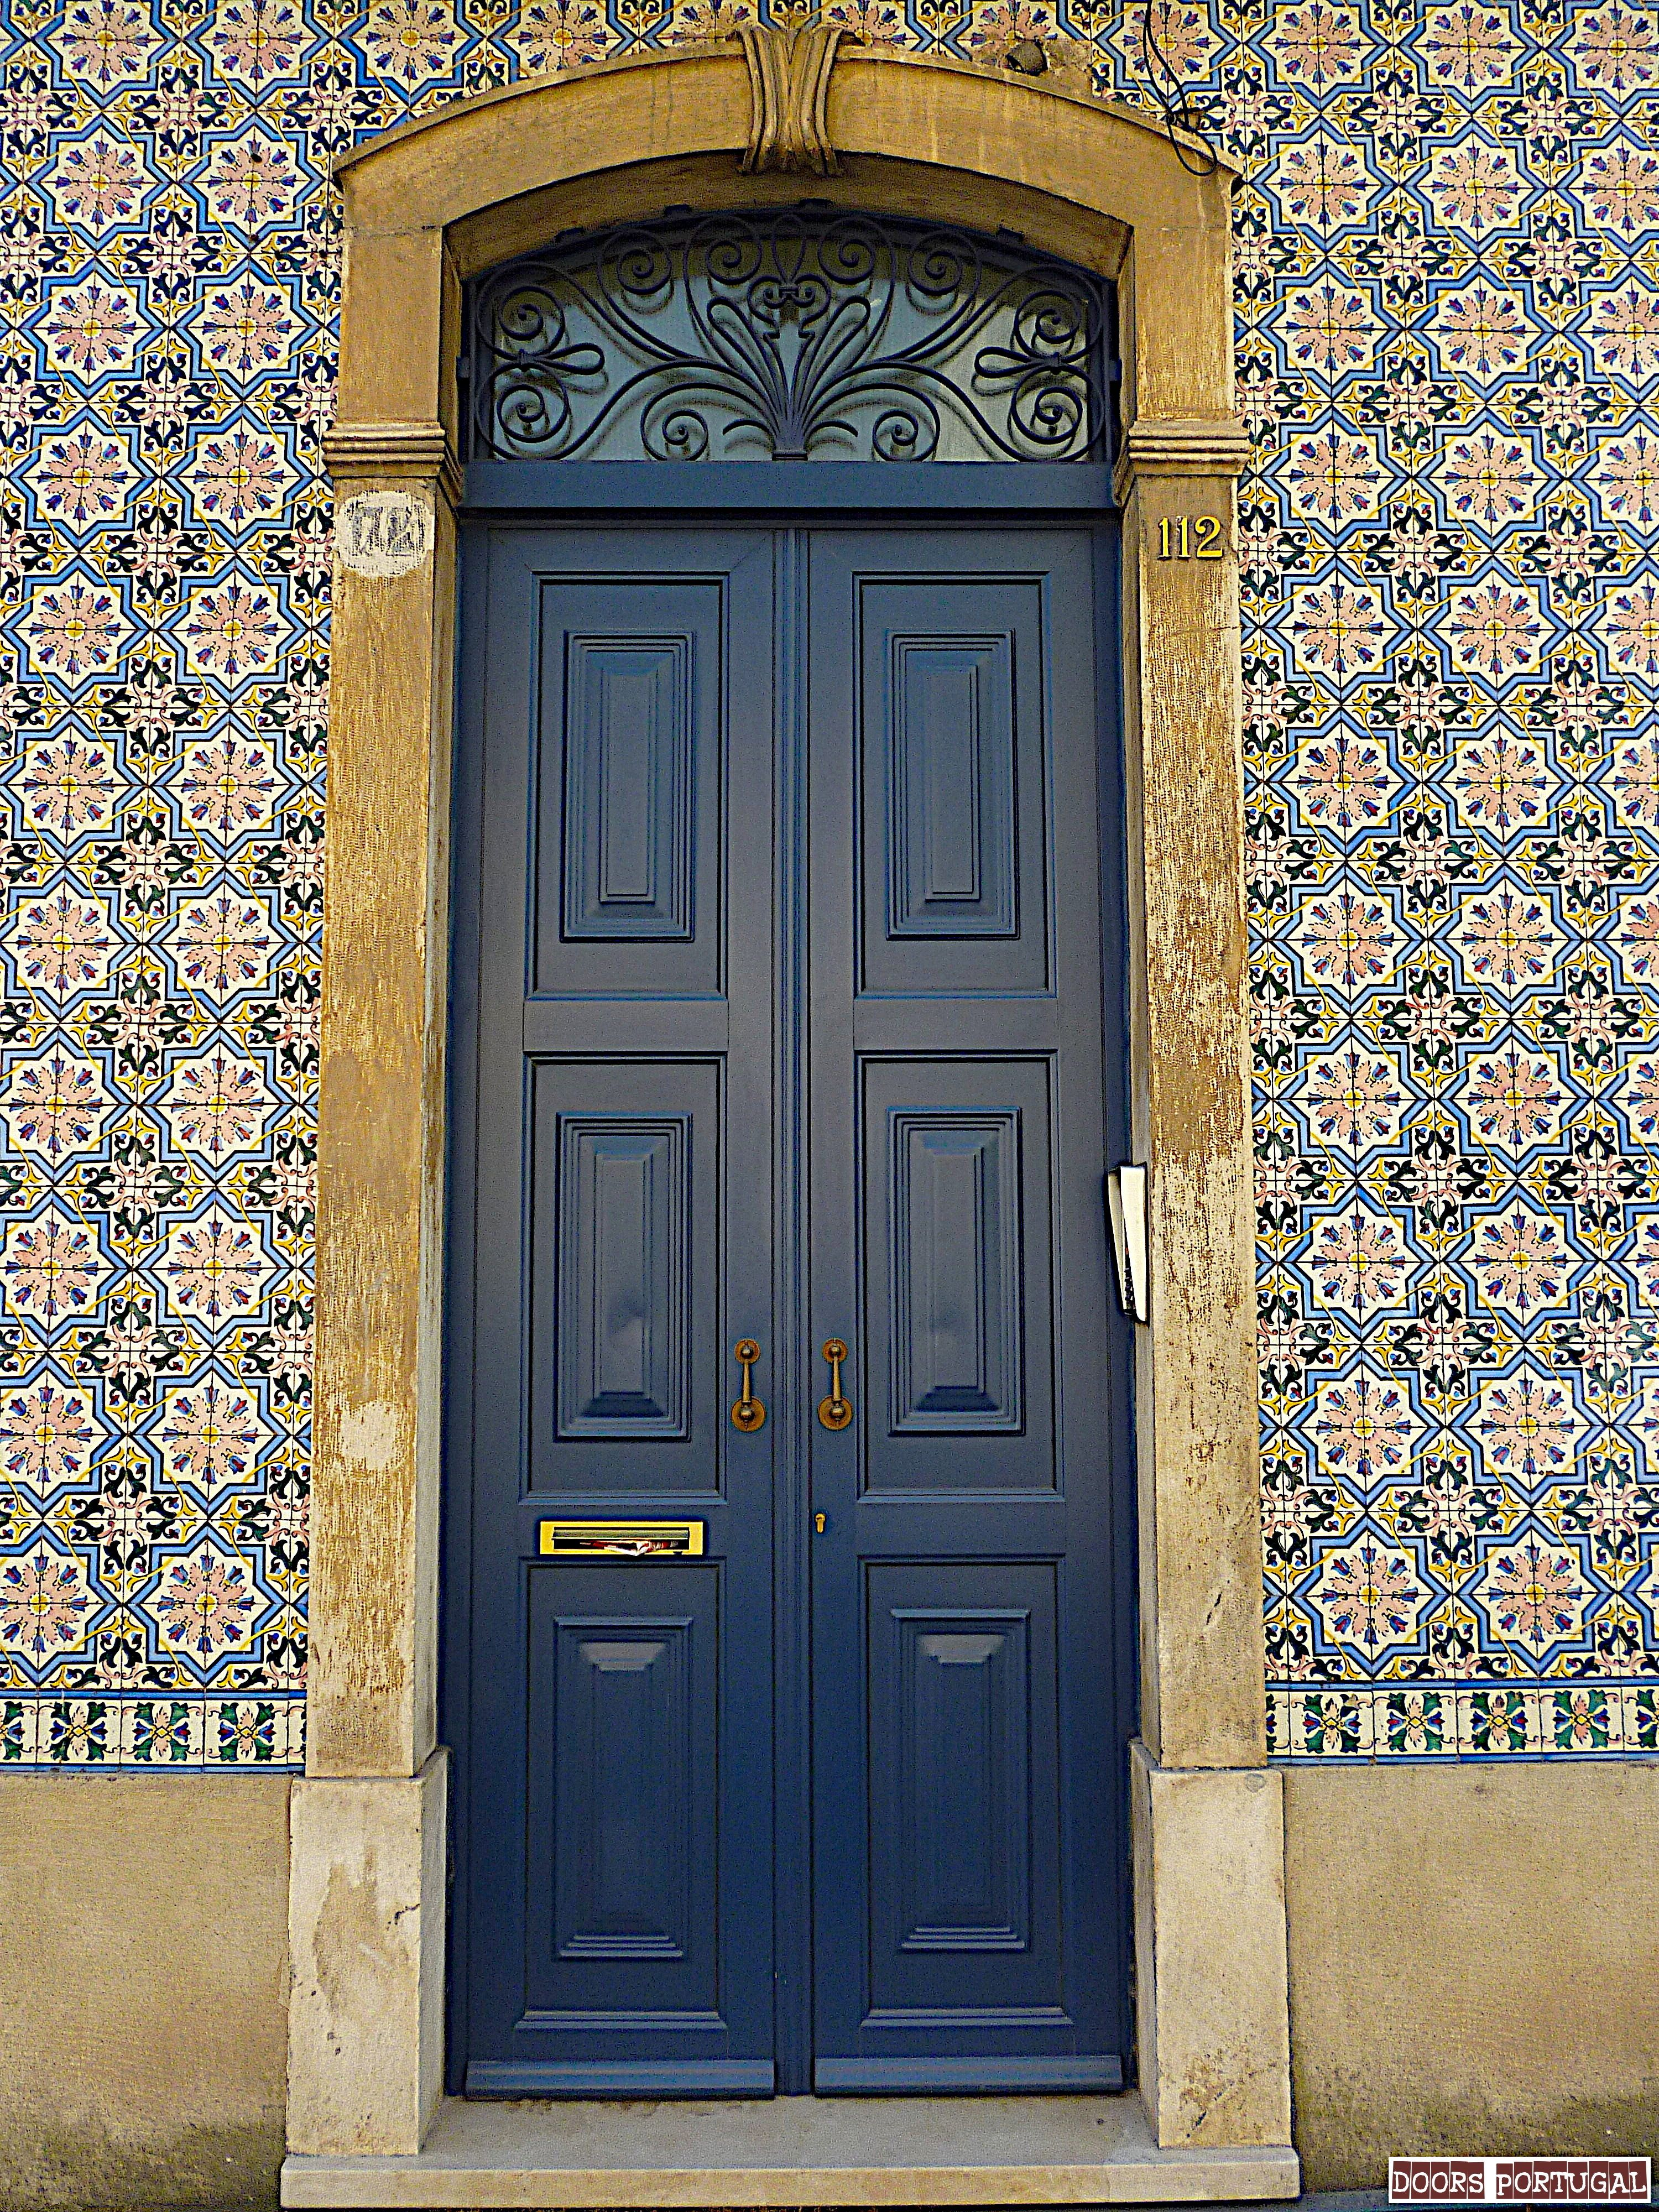 Pin by Isaac Zimmer on Entry way | Pinterest | Portuguese, Portugal ...